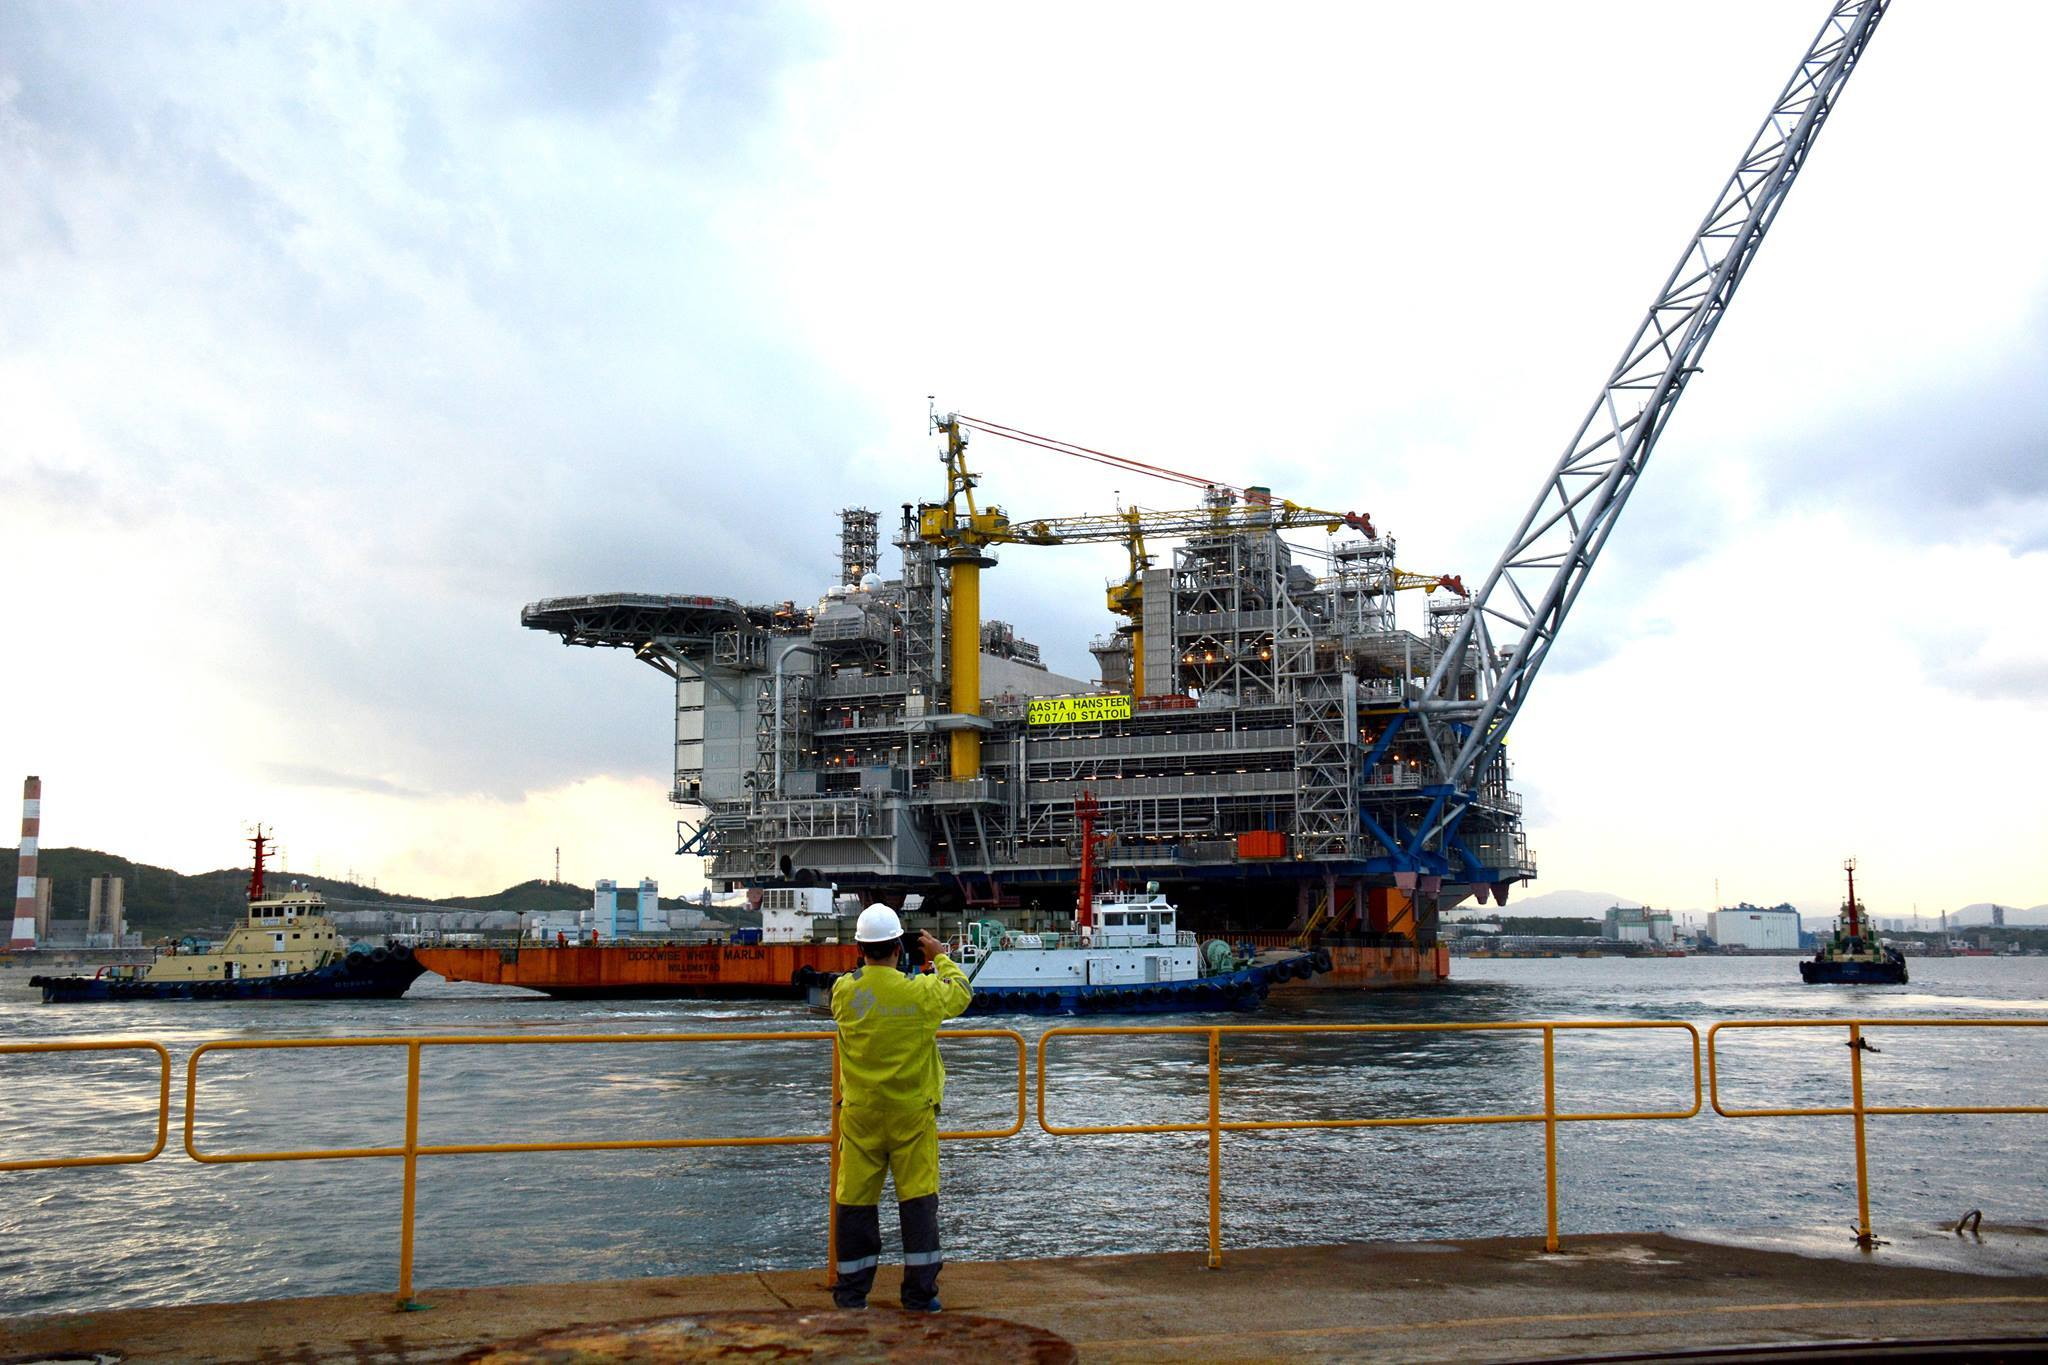 The topside for Statoil's Aasta Hansteen platform